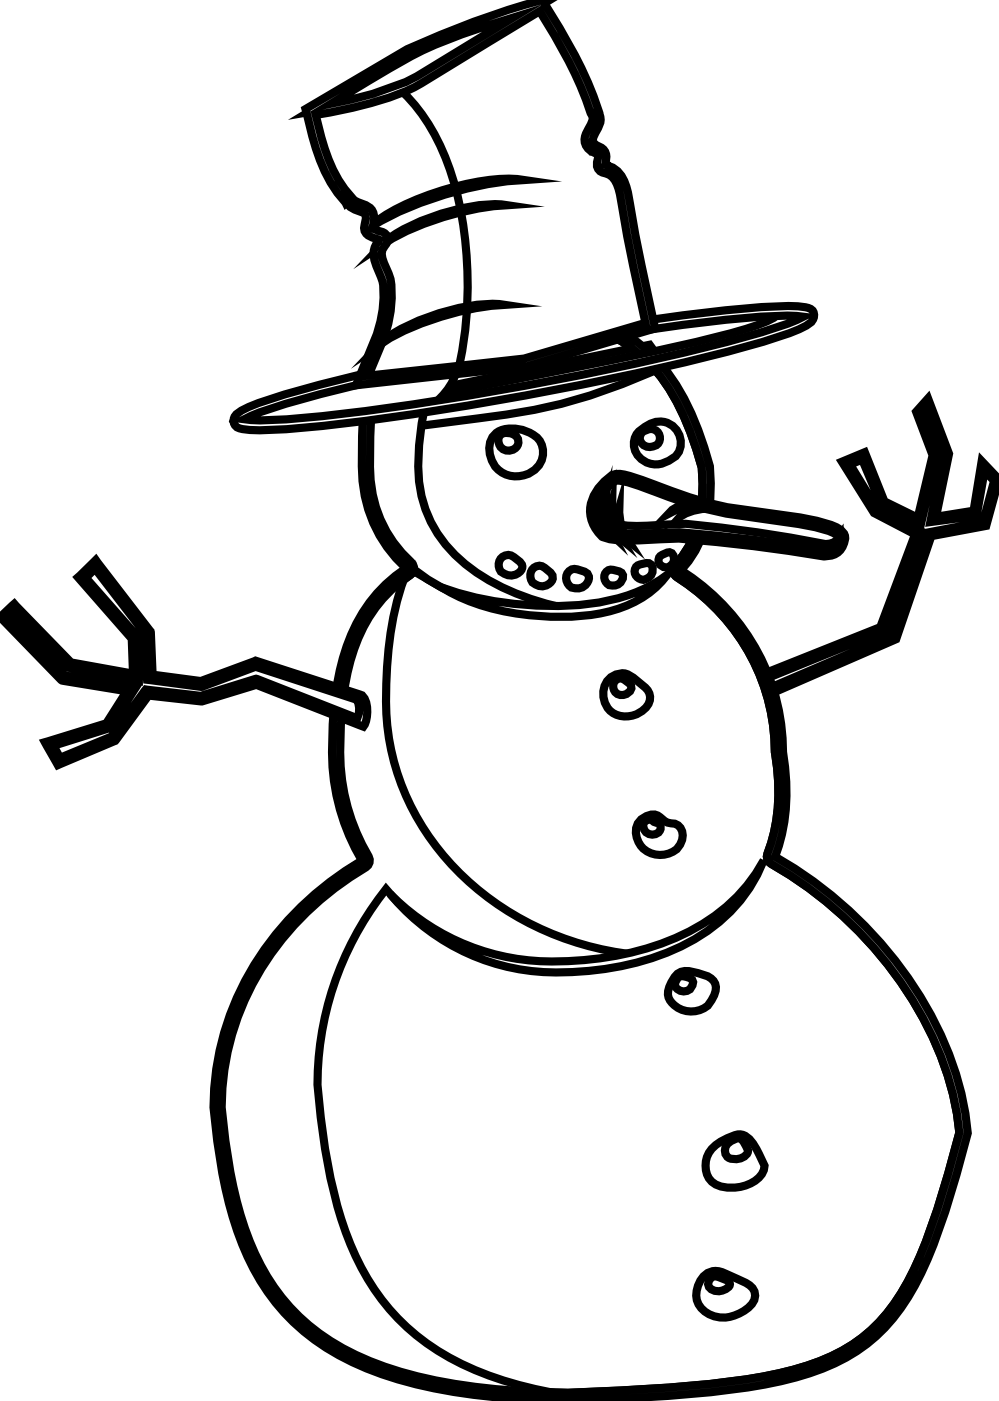 Related Pictures Illustration Black And White Snowman Clip Art